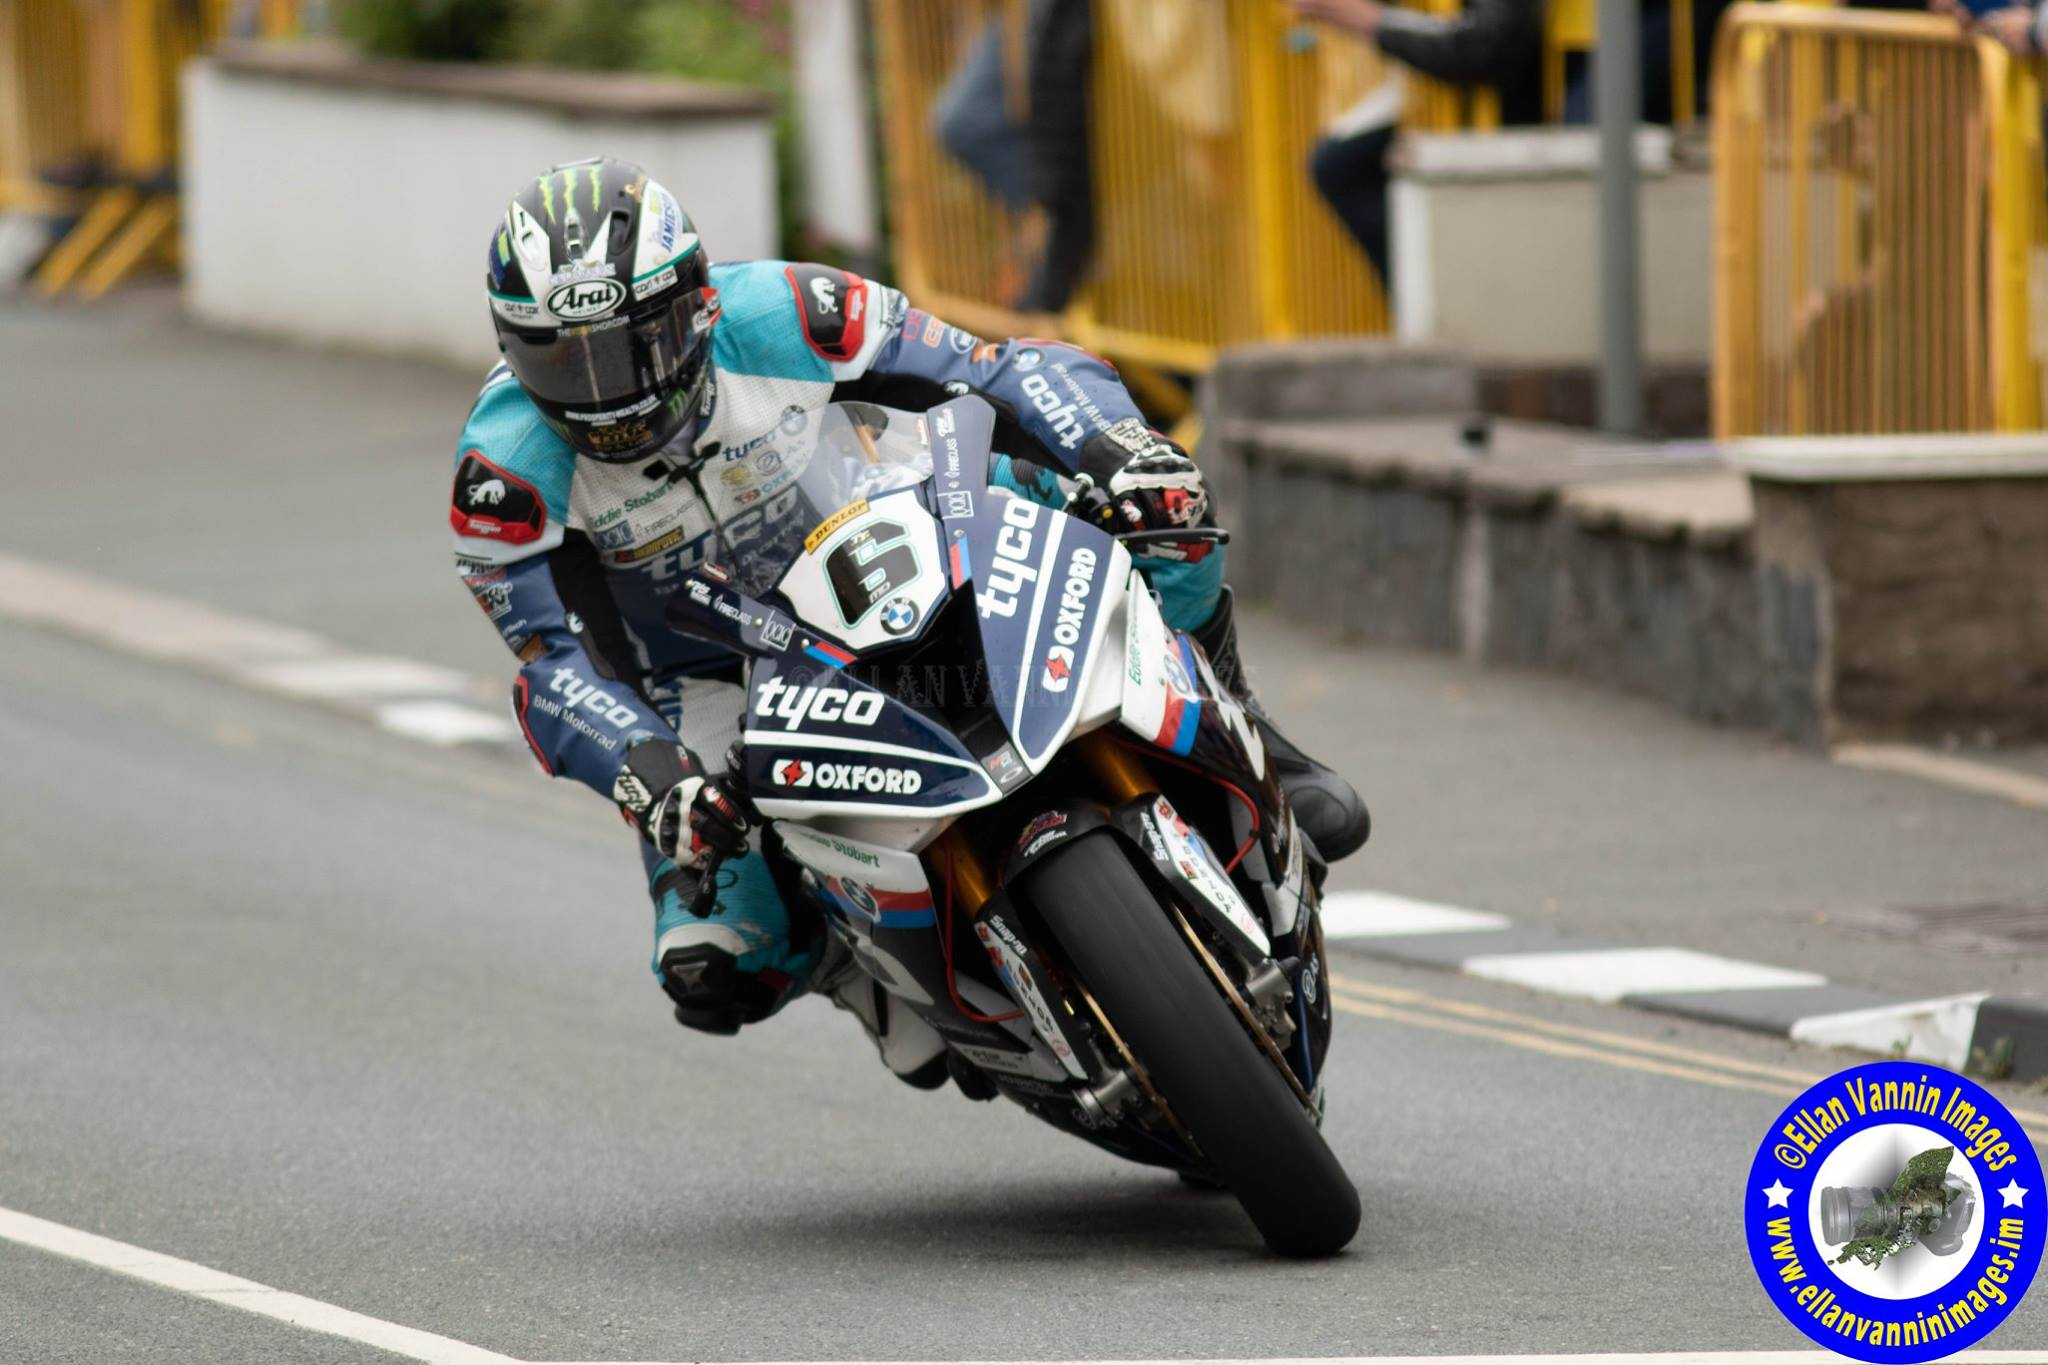 TT 2018: Dunlop Not Surprised By New Lap Record Holder Harrison's Pace